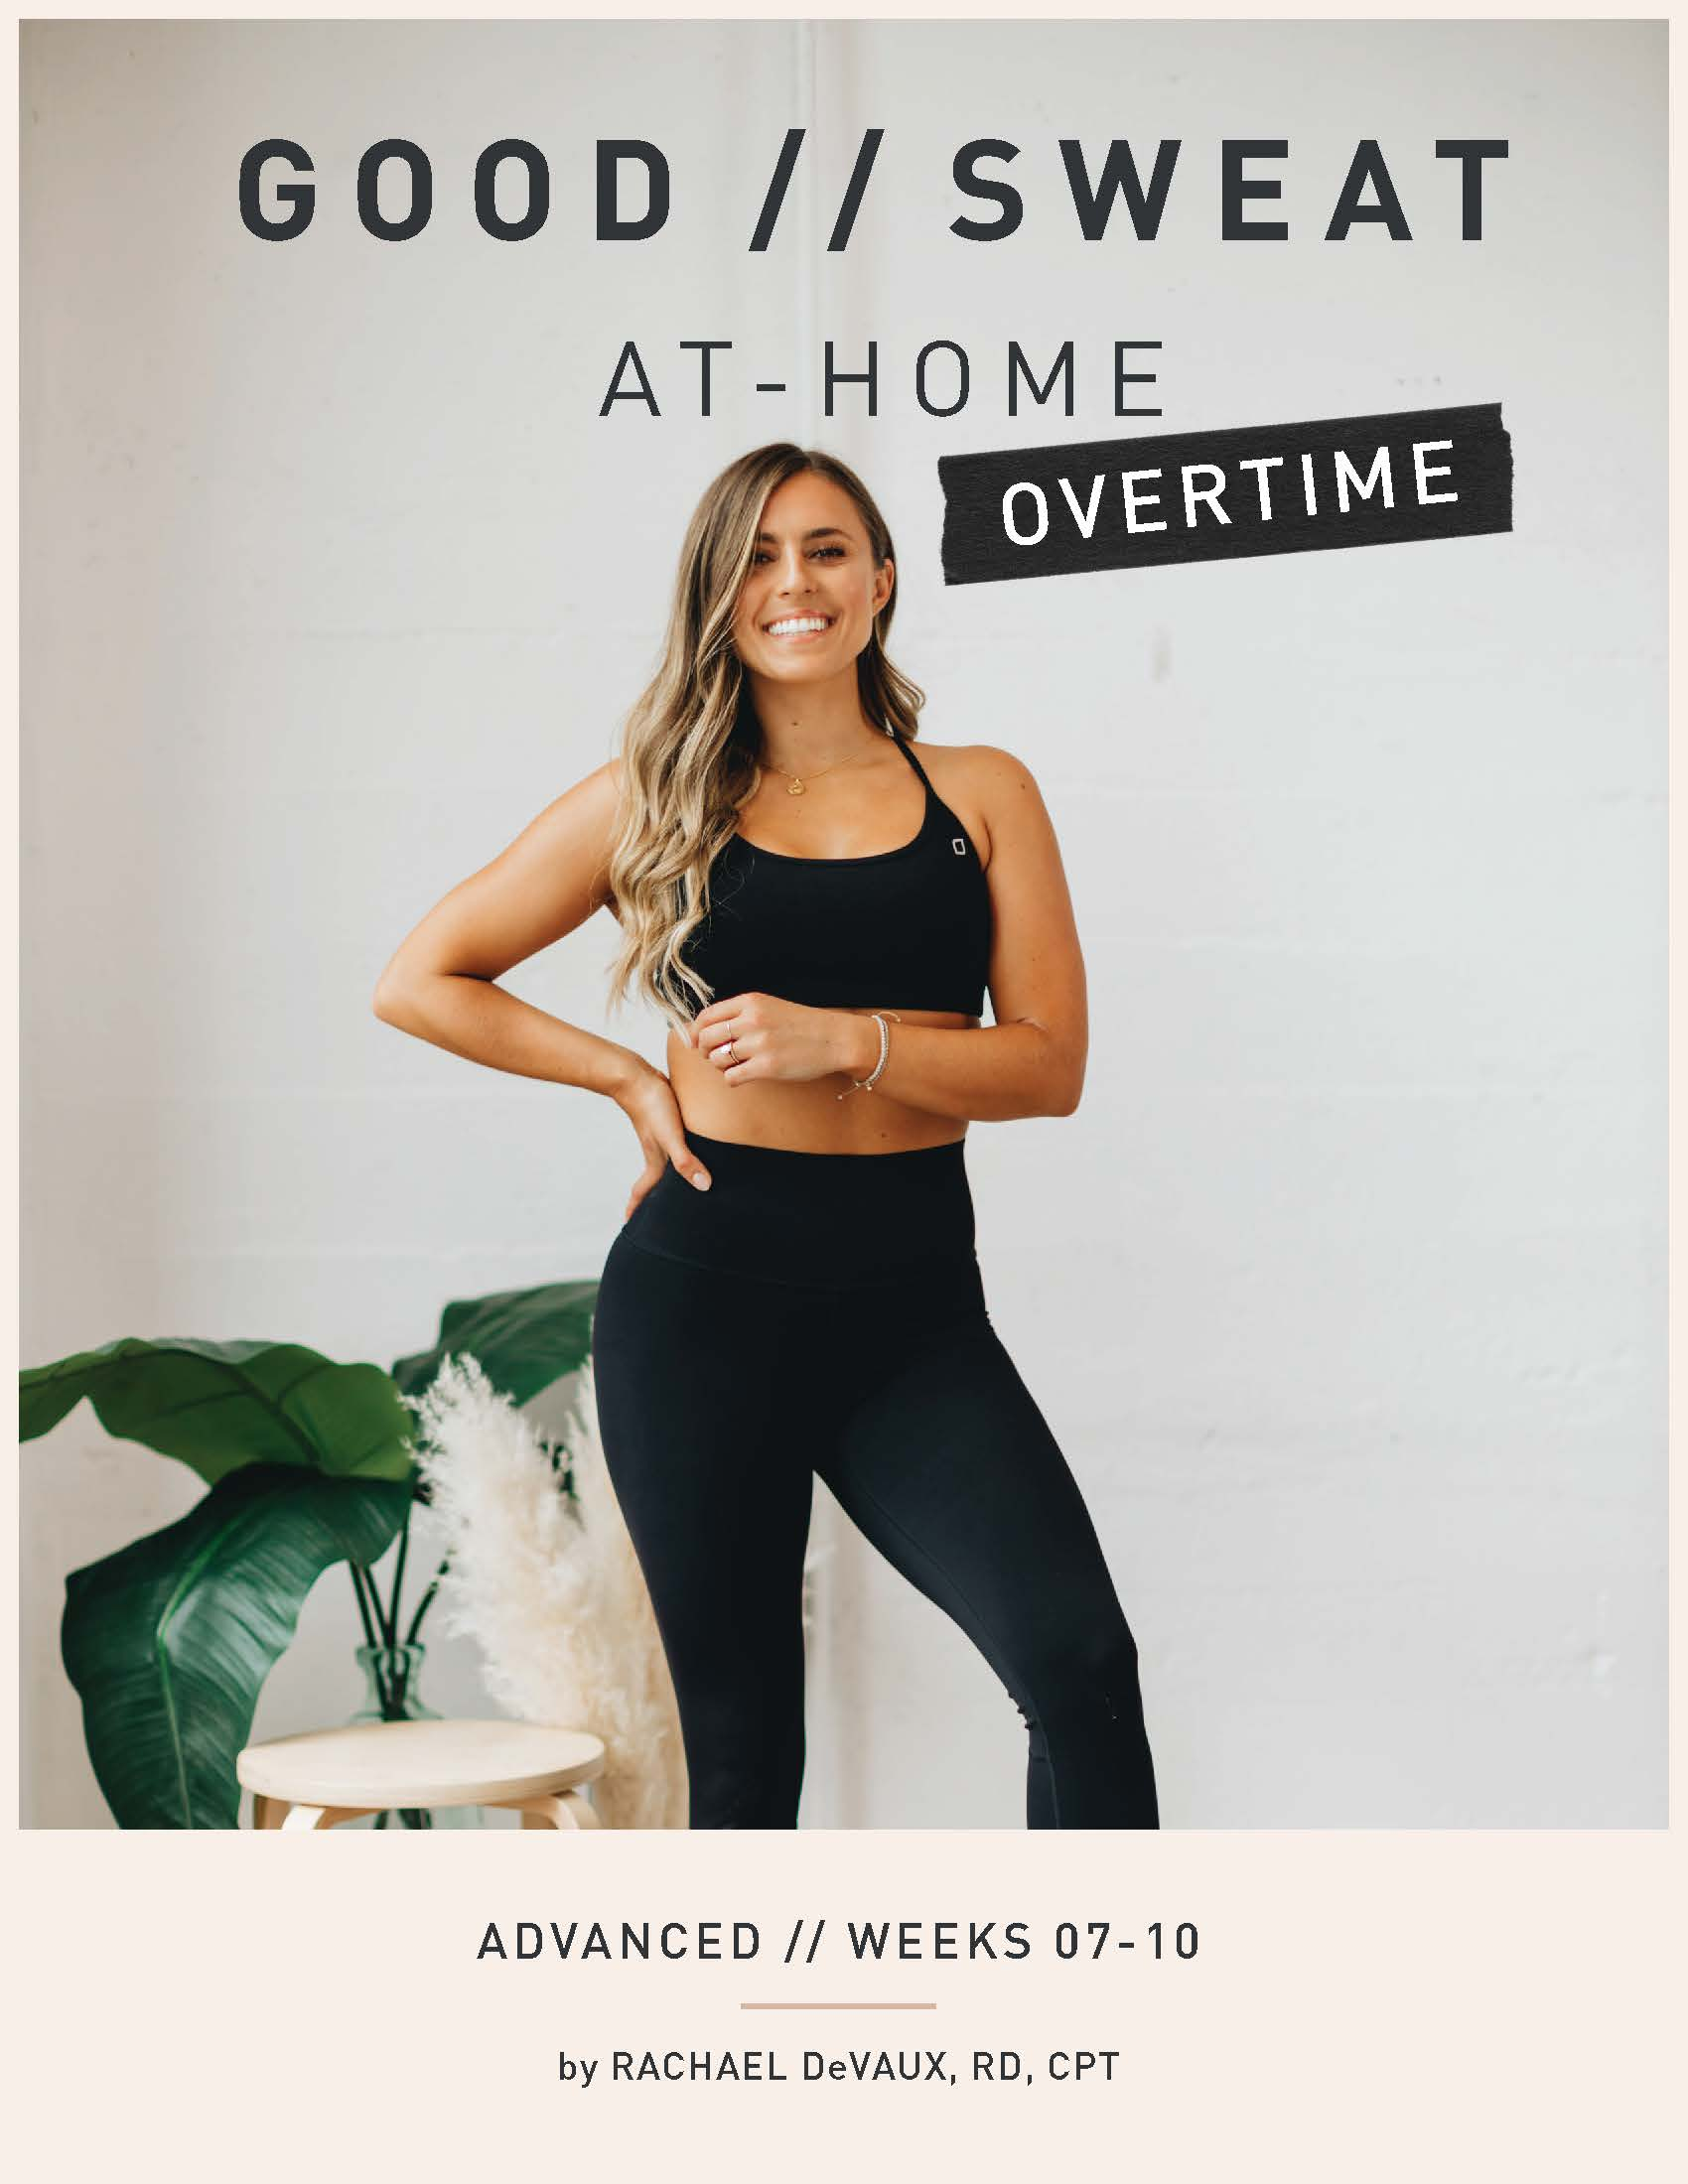 Good Sweat at Home - Overtime